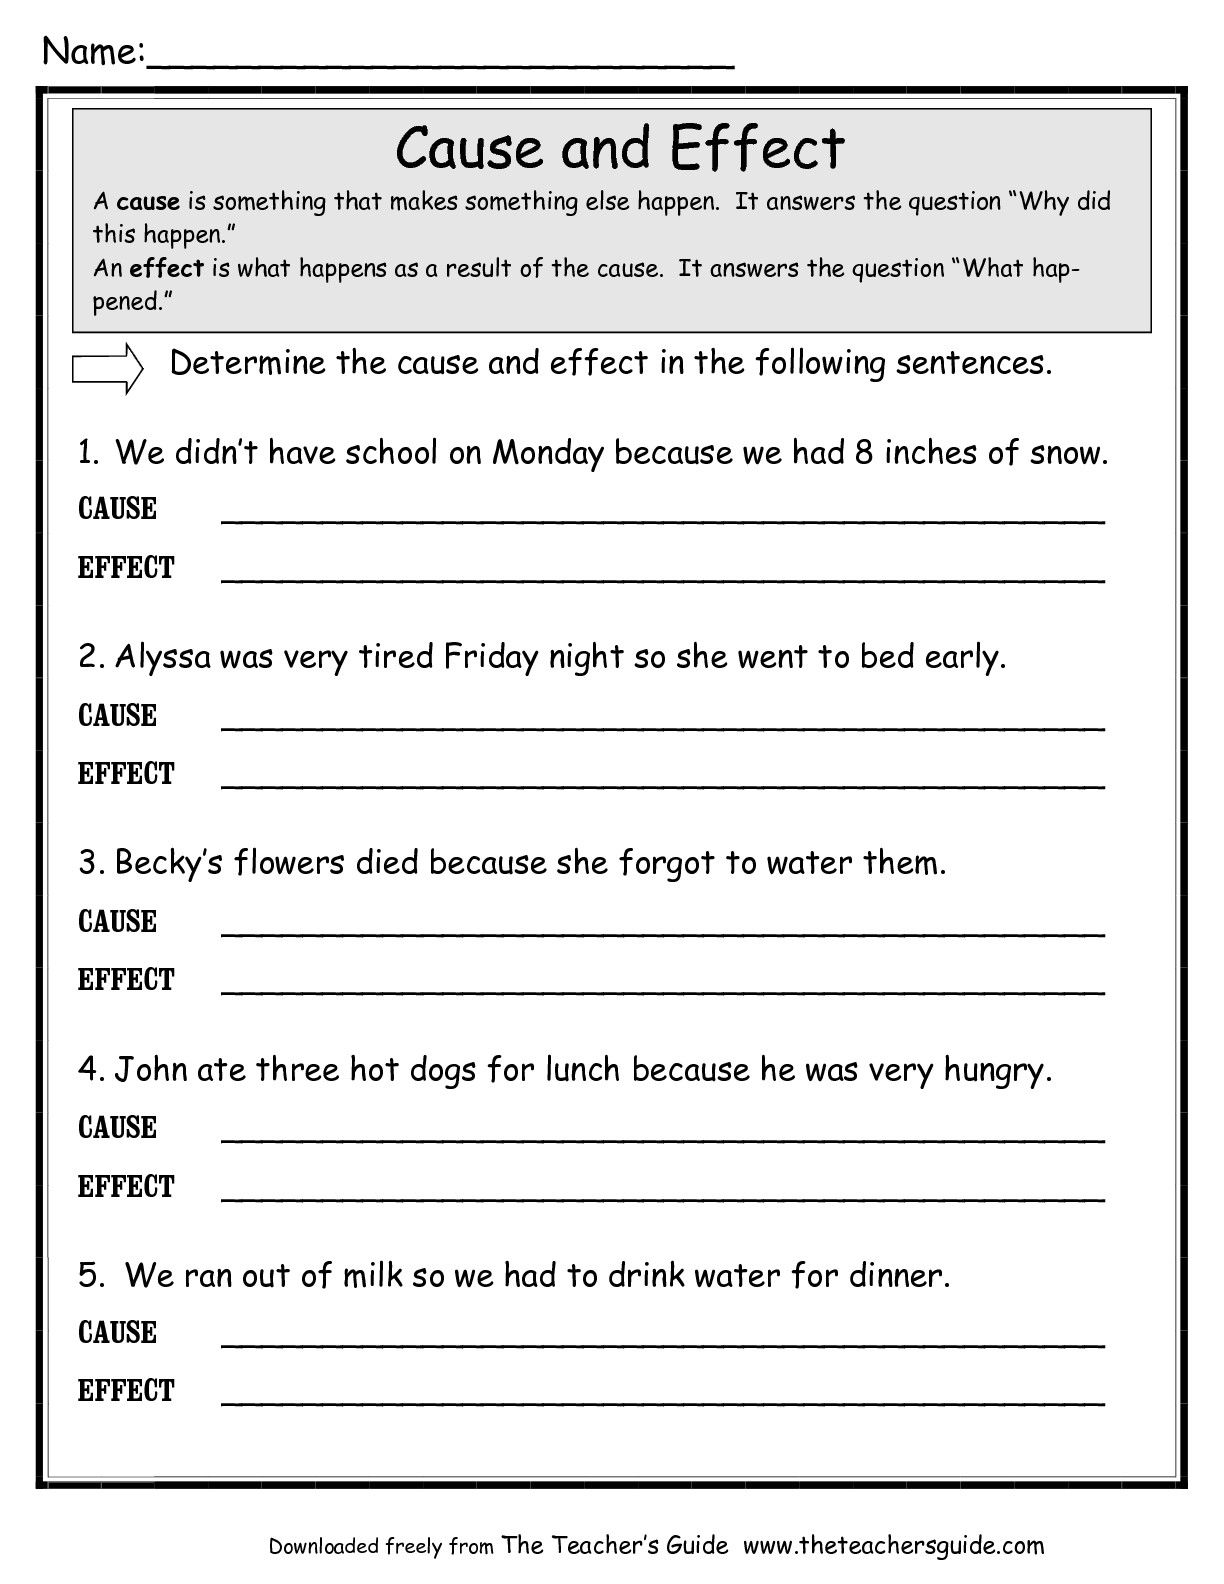 medium resolution of cause and effect worksheet - Google Search   Cause and effect worksheets